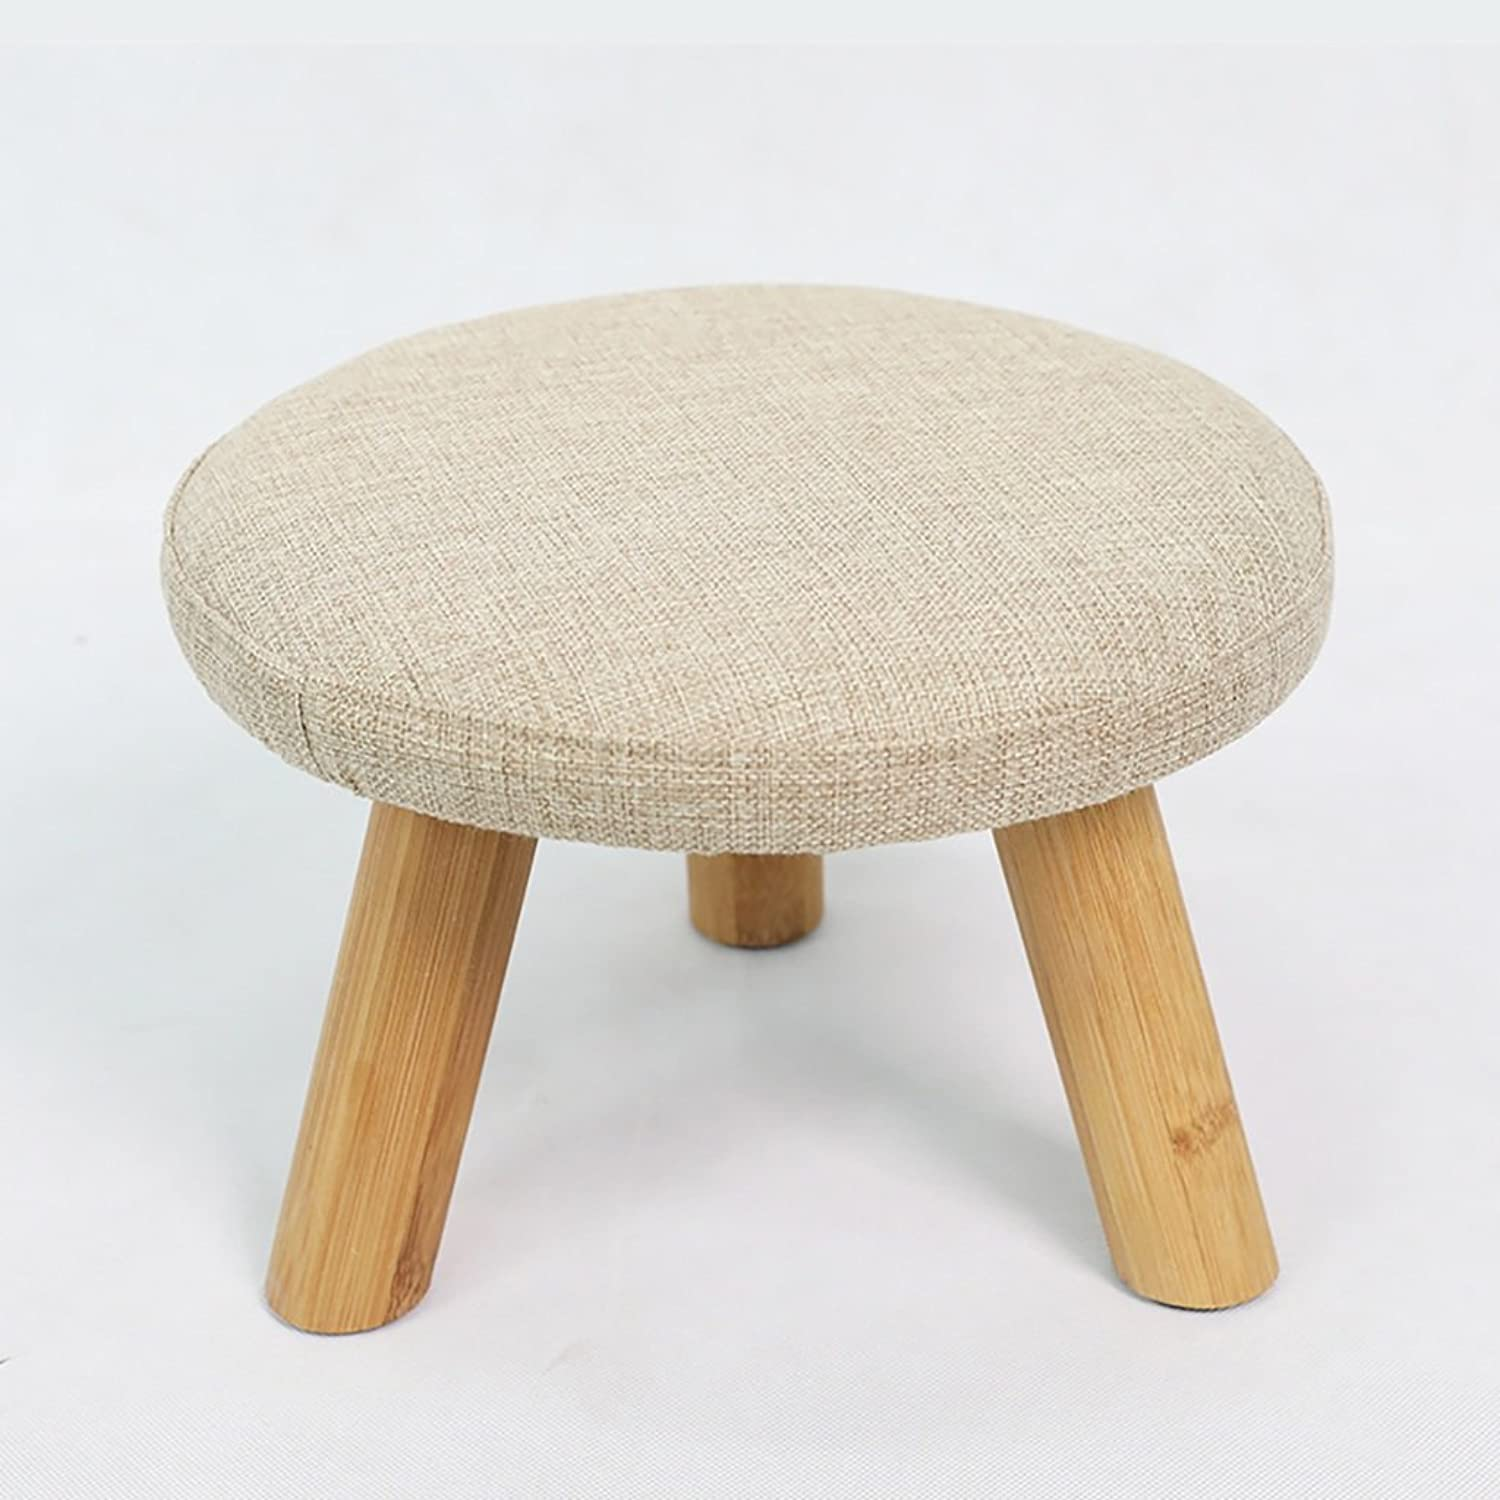 Fabric Sofa Stool shoes Bench Fashion Round Stool Creative Small Wooden Bench Bamboo Stool,Removable Cover (color   Brown)